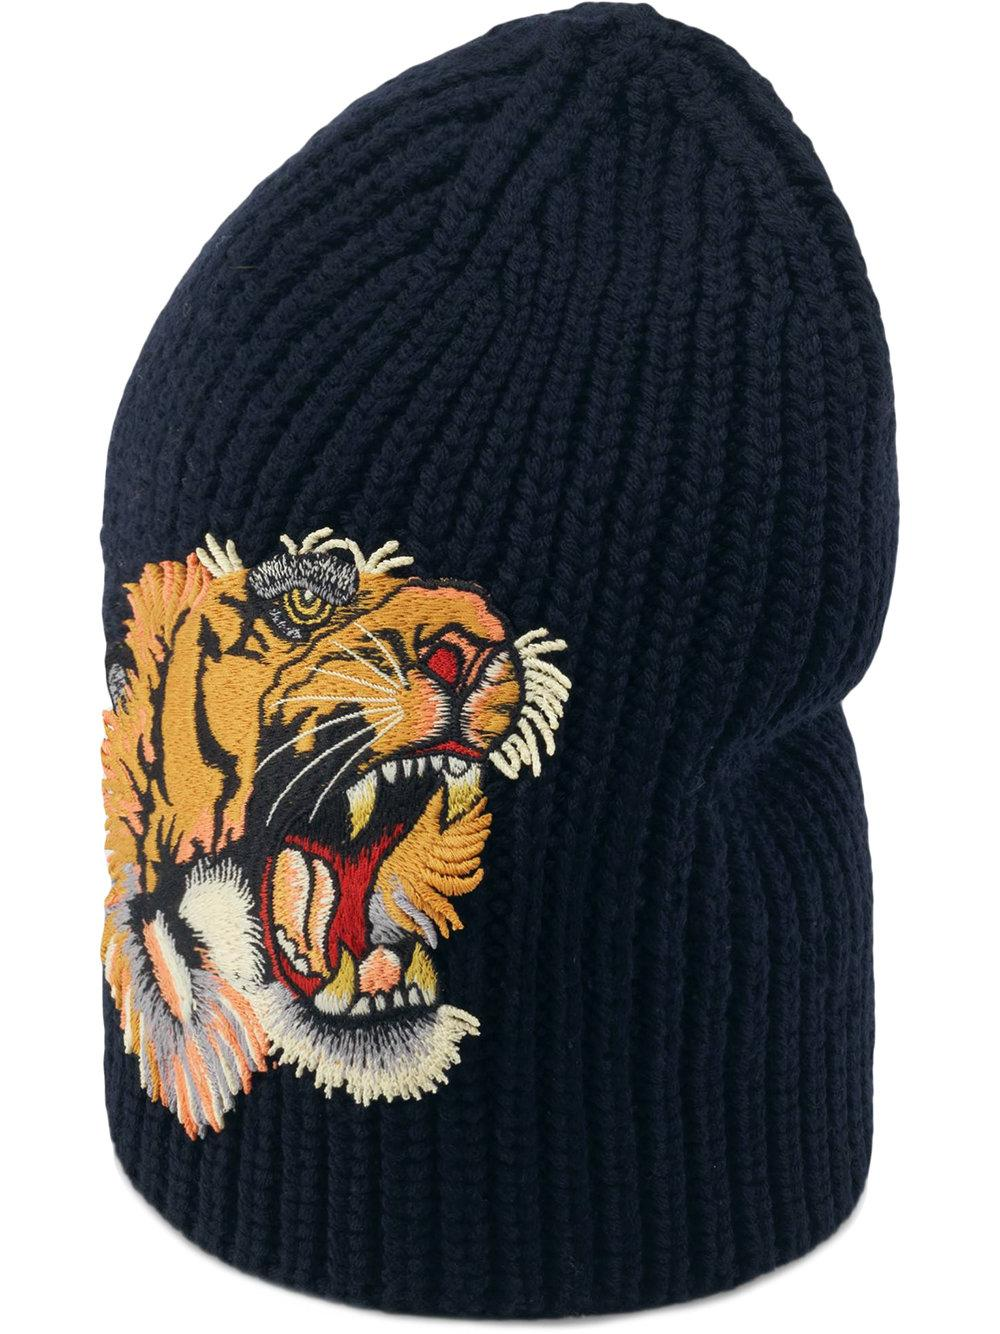 307aae84c12 Gucci Wool Hat With Tiger - Farfetch In Blue